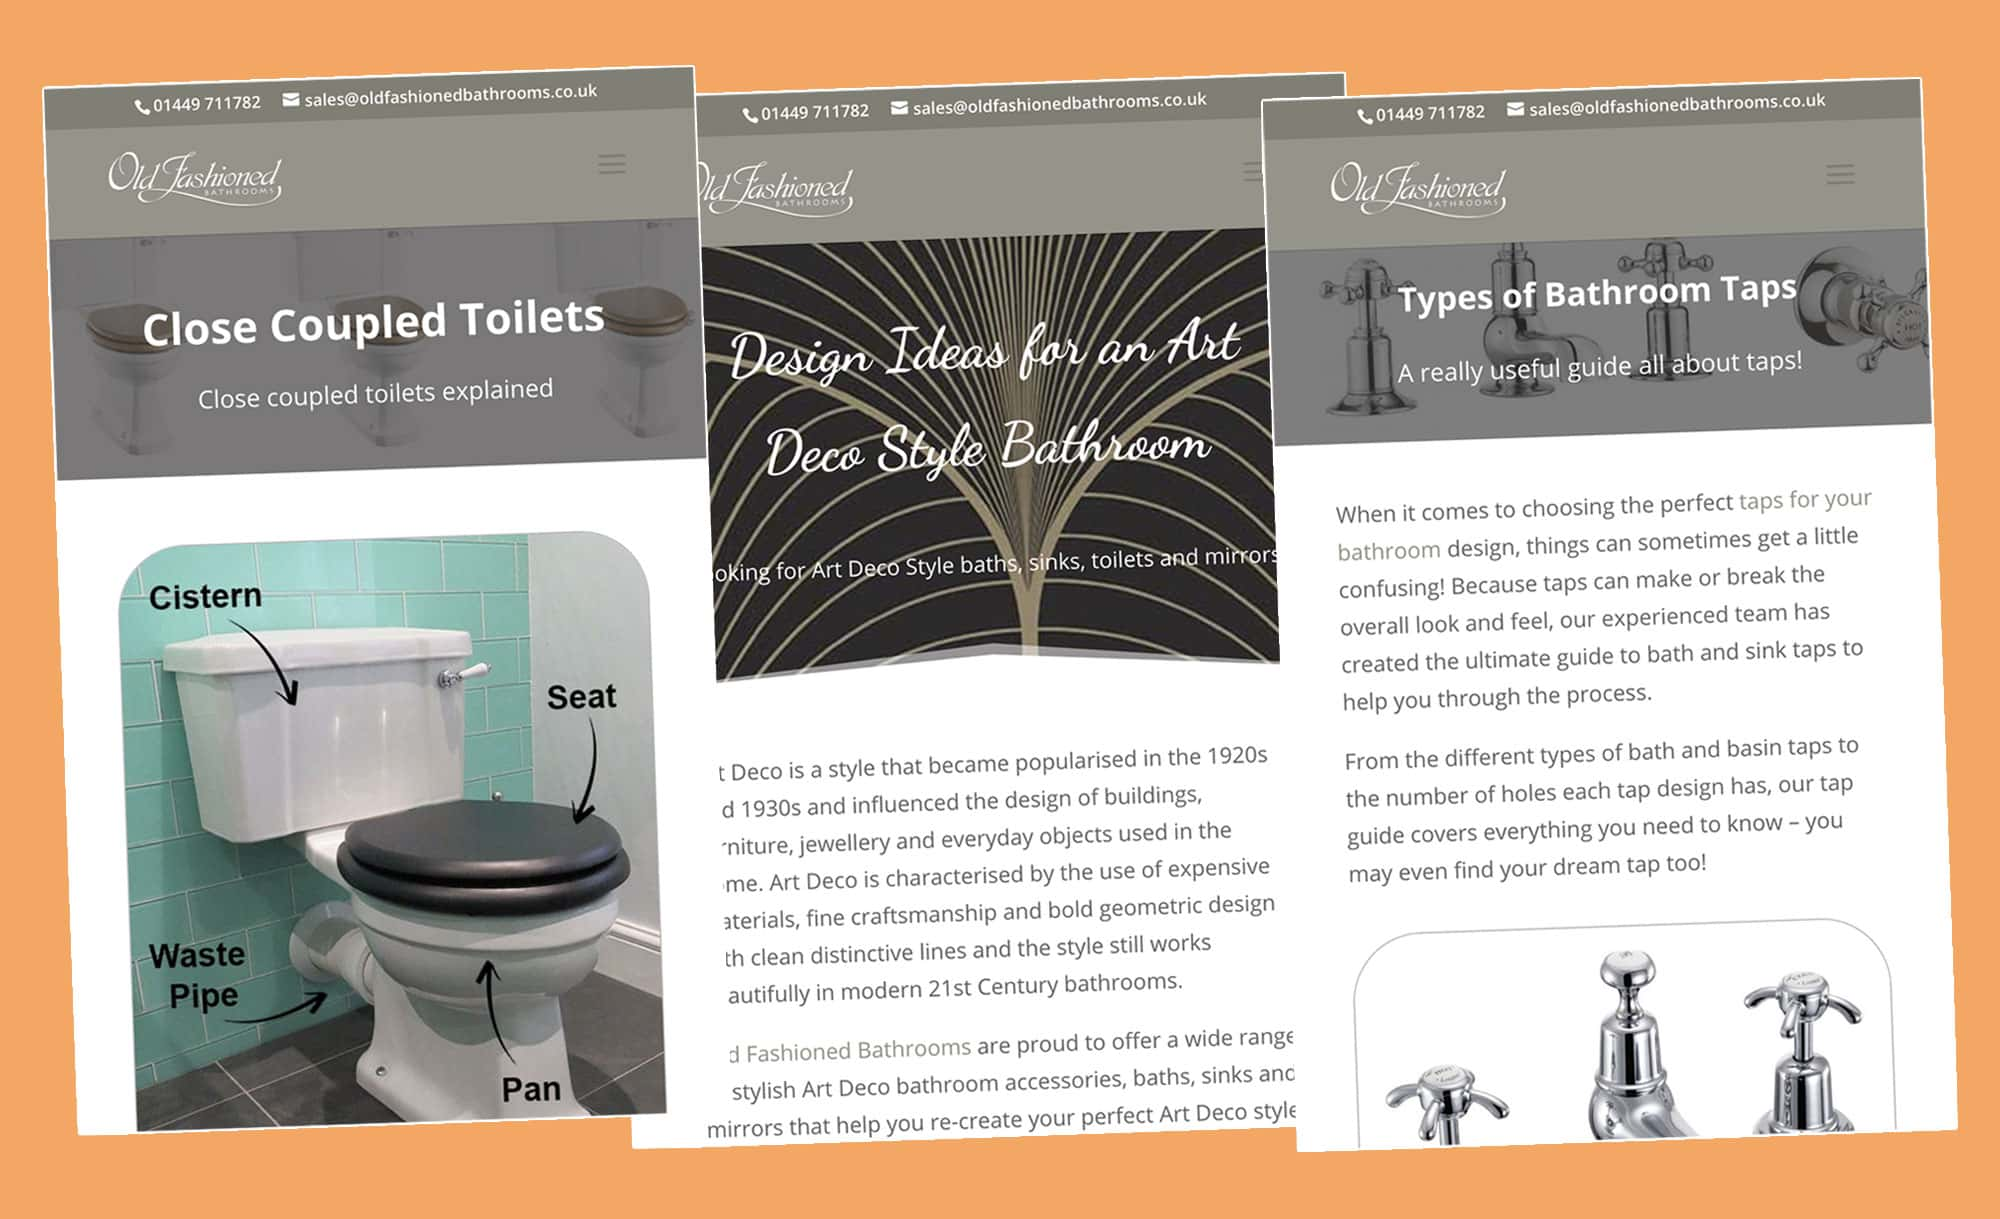 Old Fashioned Bathrooms blog content